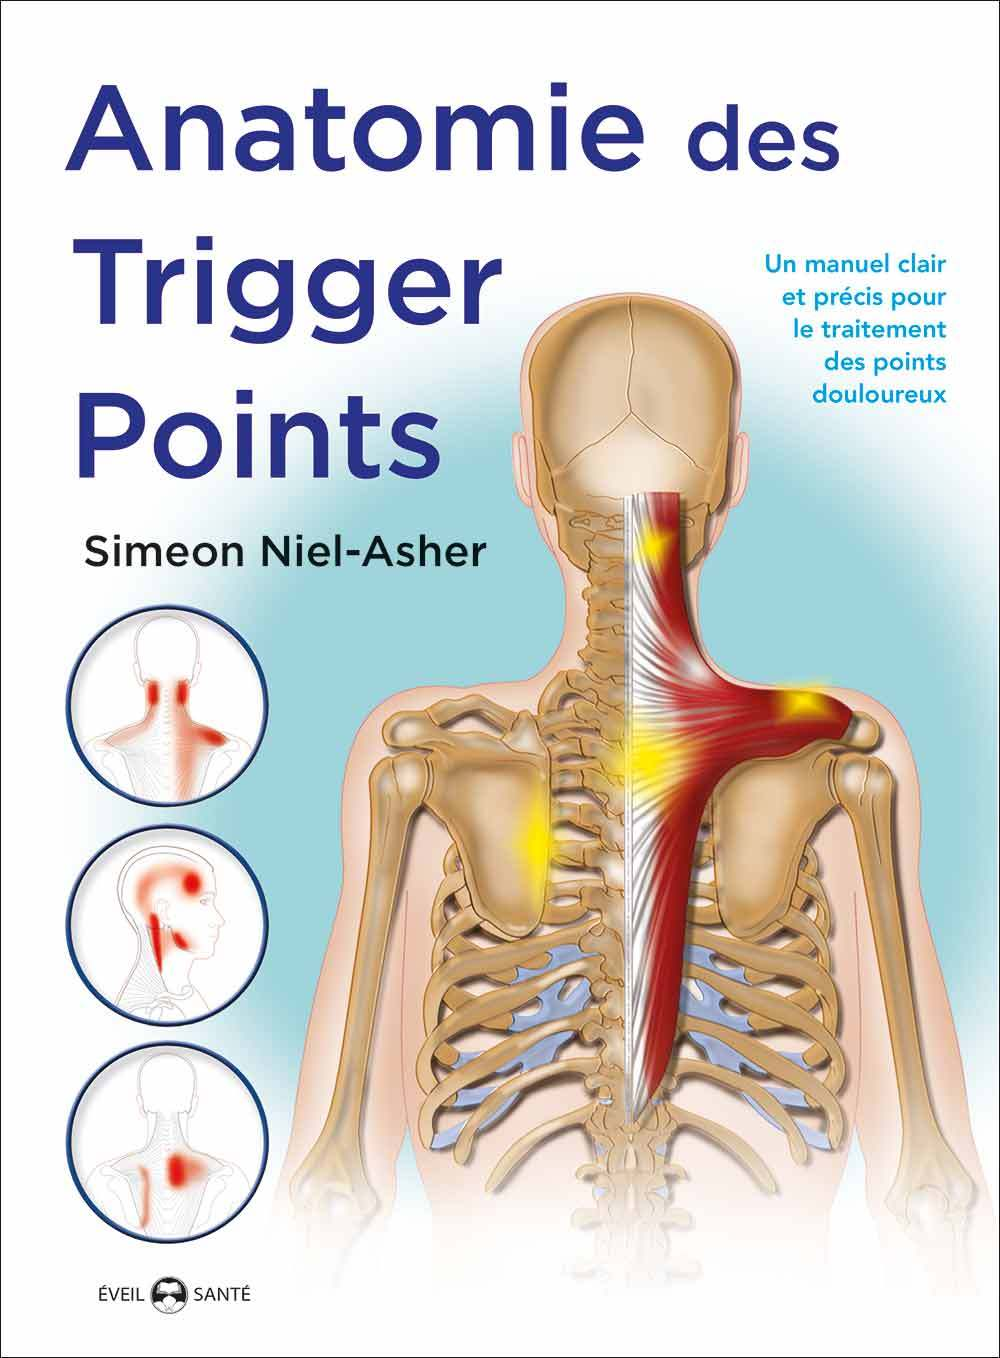 ANATOMIE DES TRIGGER POINTS